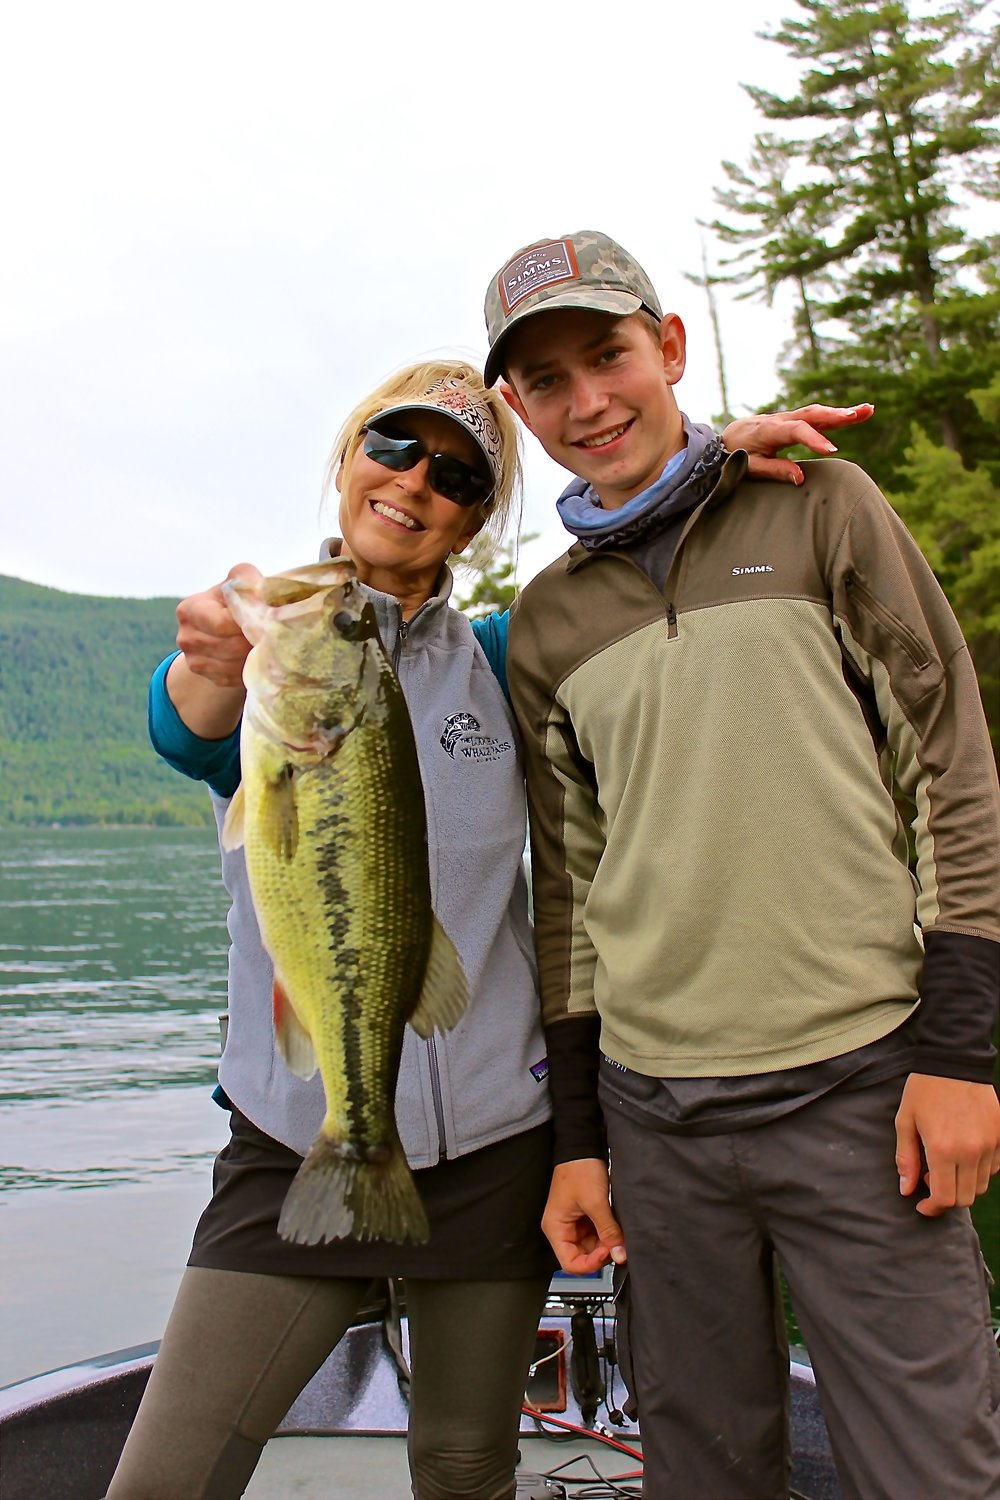 Sometimes Mom catches the bigger fish!